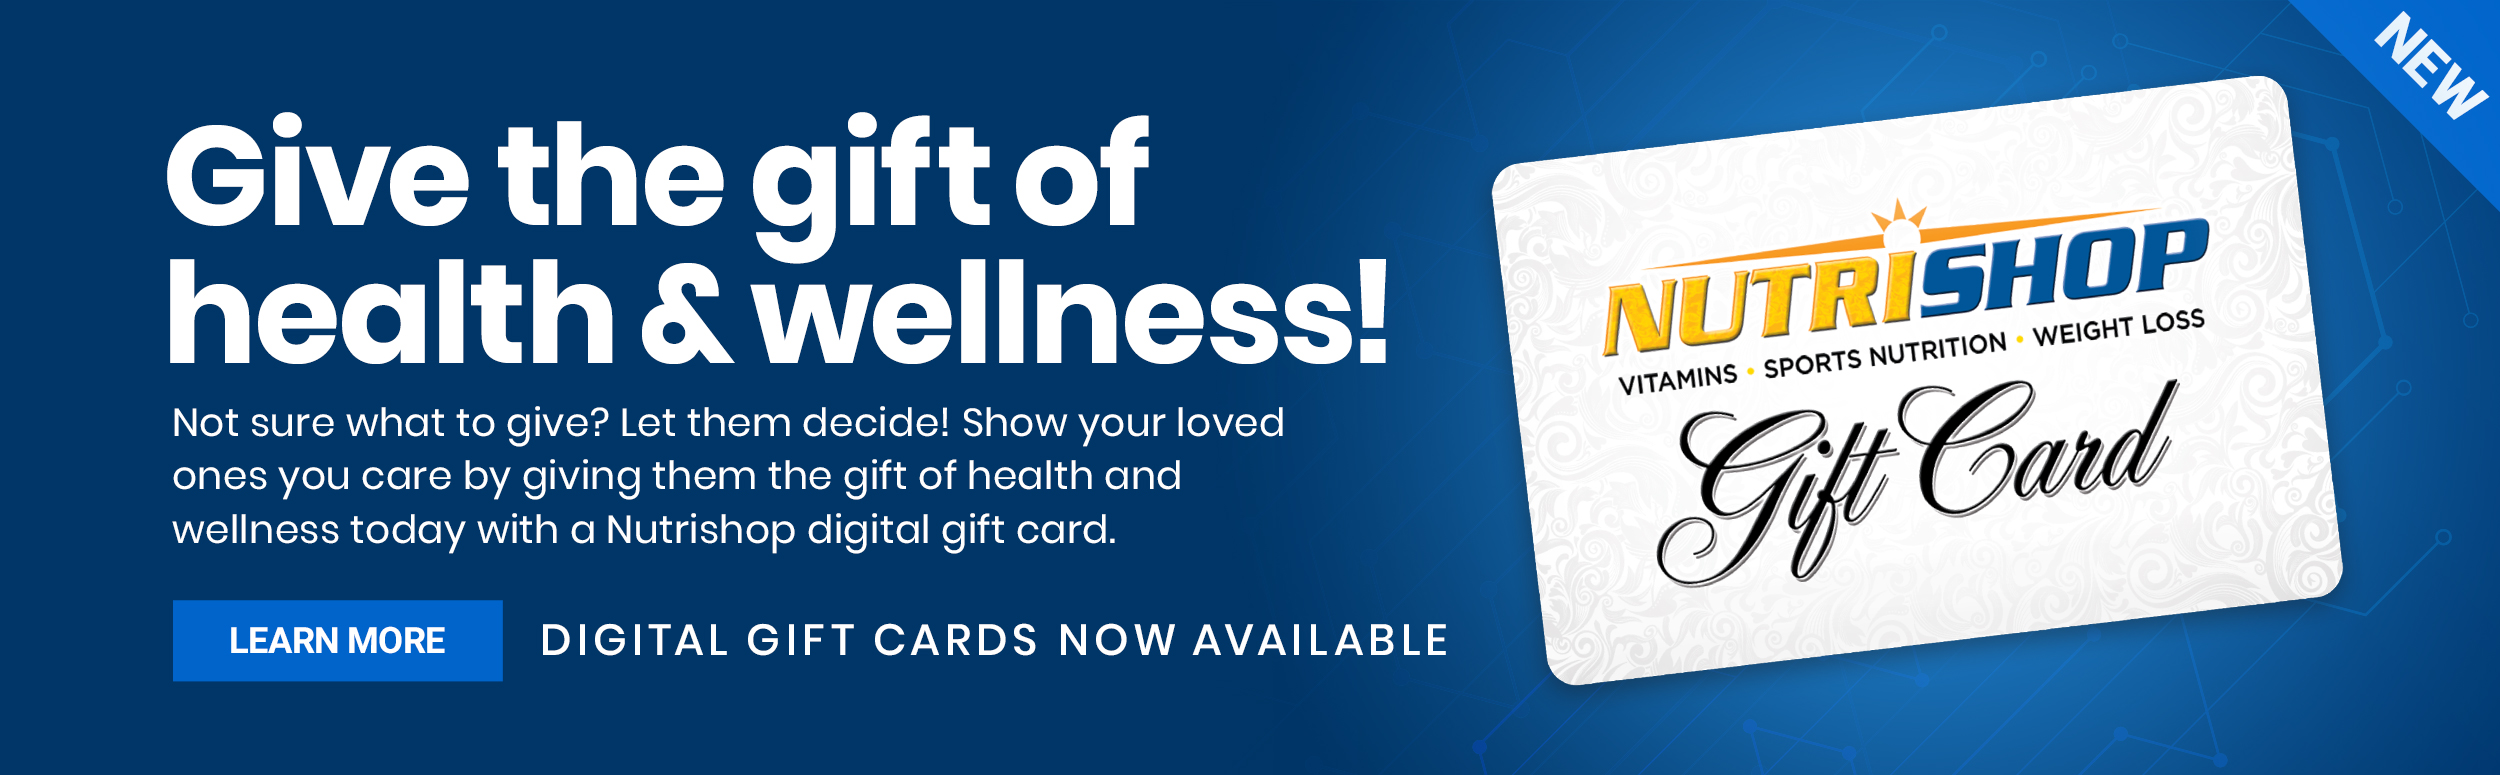 Give the gift of health and wellness. Digital Gift Cards now available